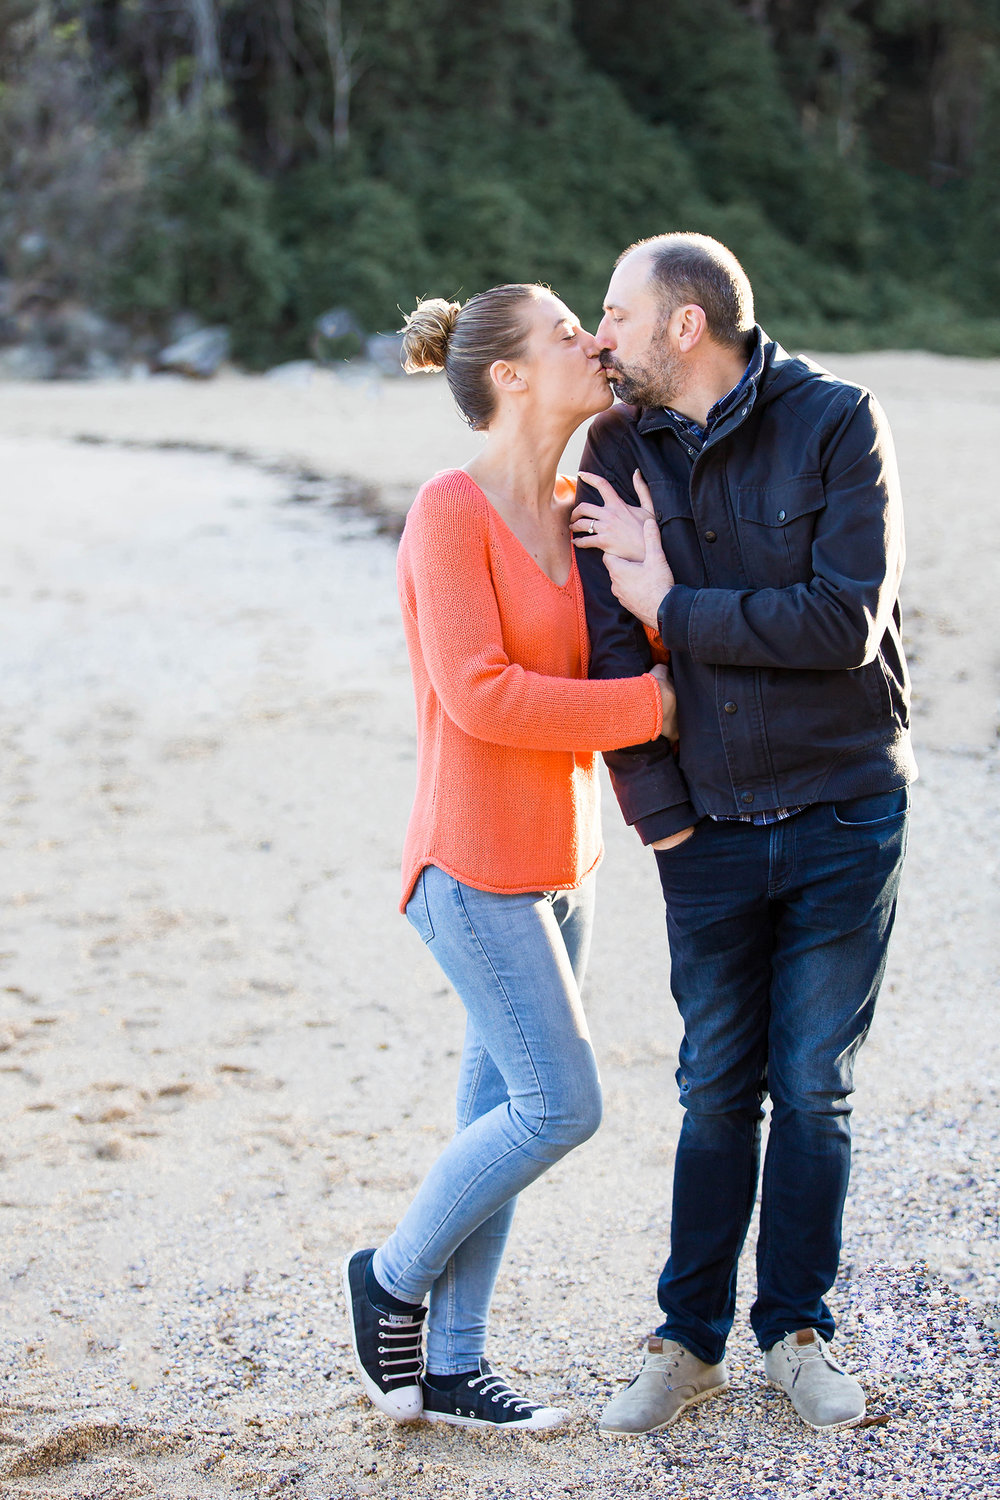 Sydney Pre-Wedding Photo Session - Shelly Beach Manly - Jennifer Lam Photography (10).jpg